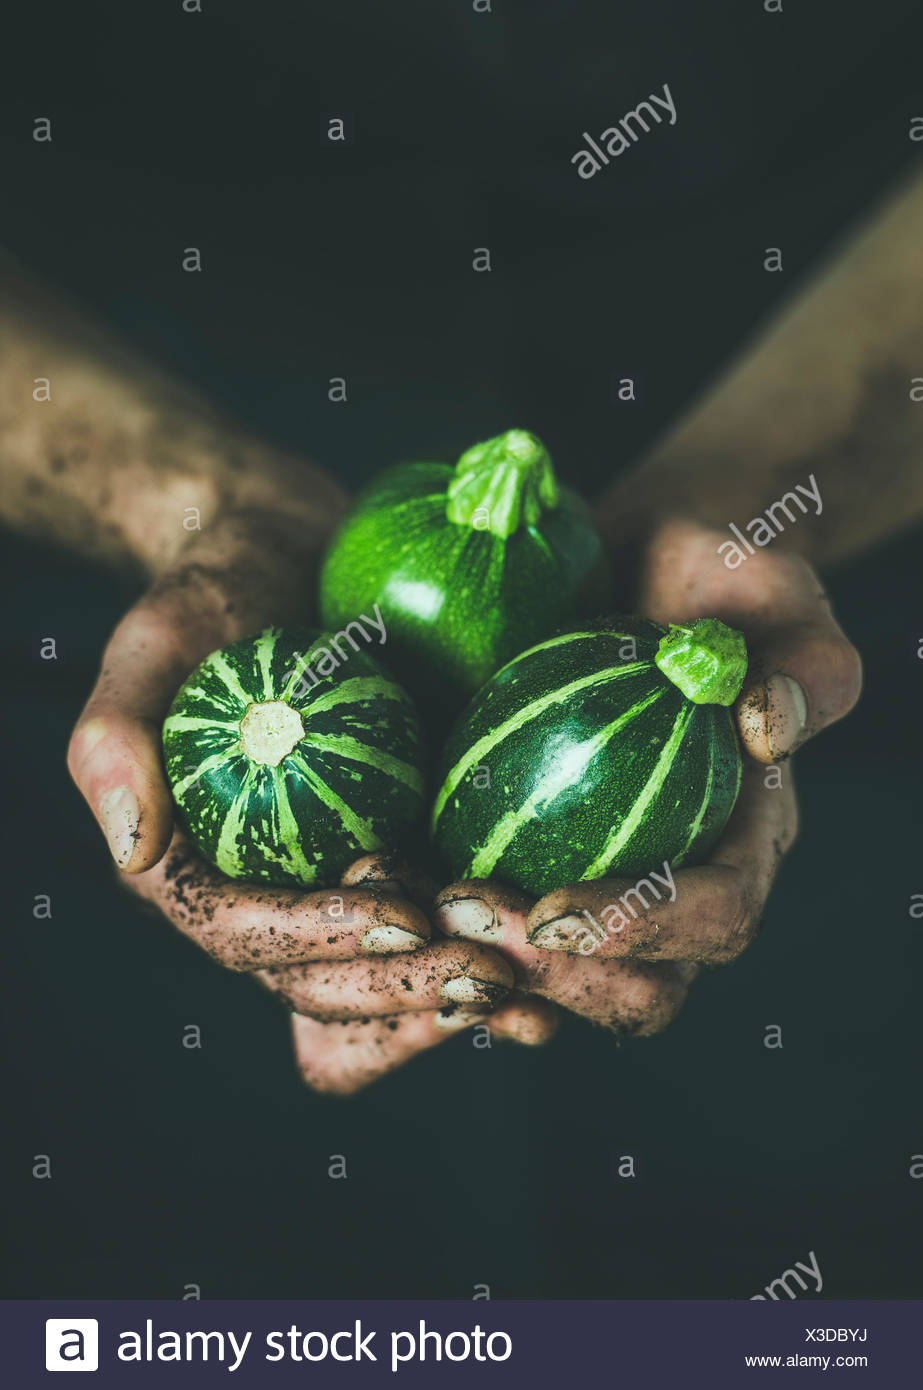 Man wearing black clothing holding fresh seasonal green round zucchinis in his dirty hands at local farmers market. Gardening, farming and natural foo - Stock Image